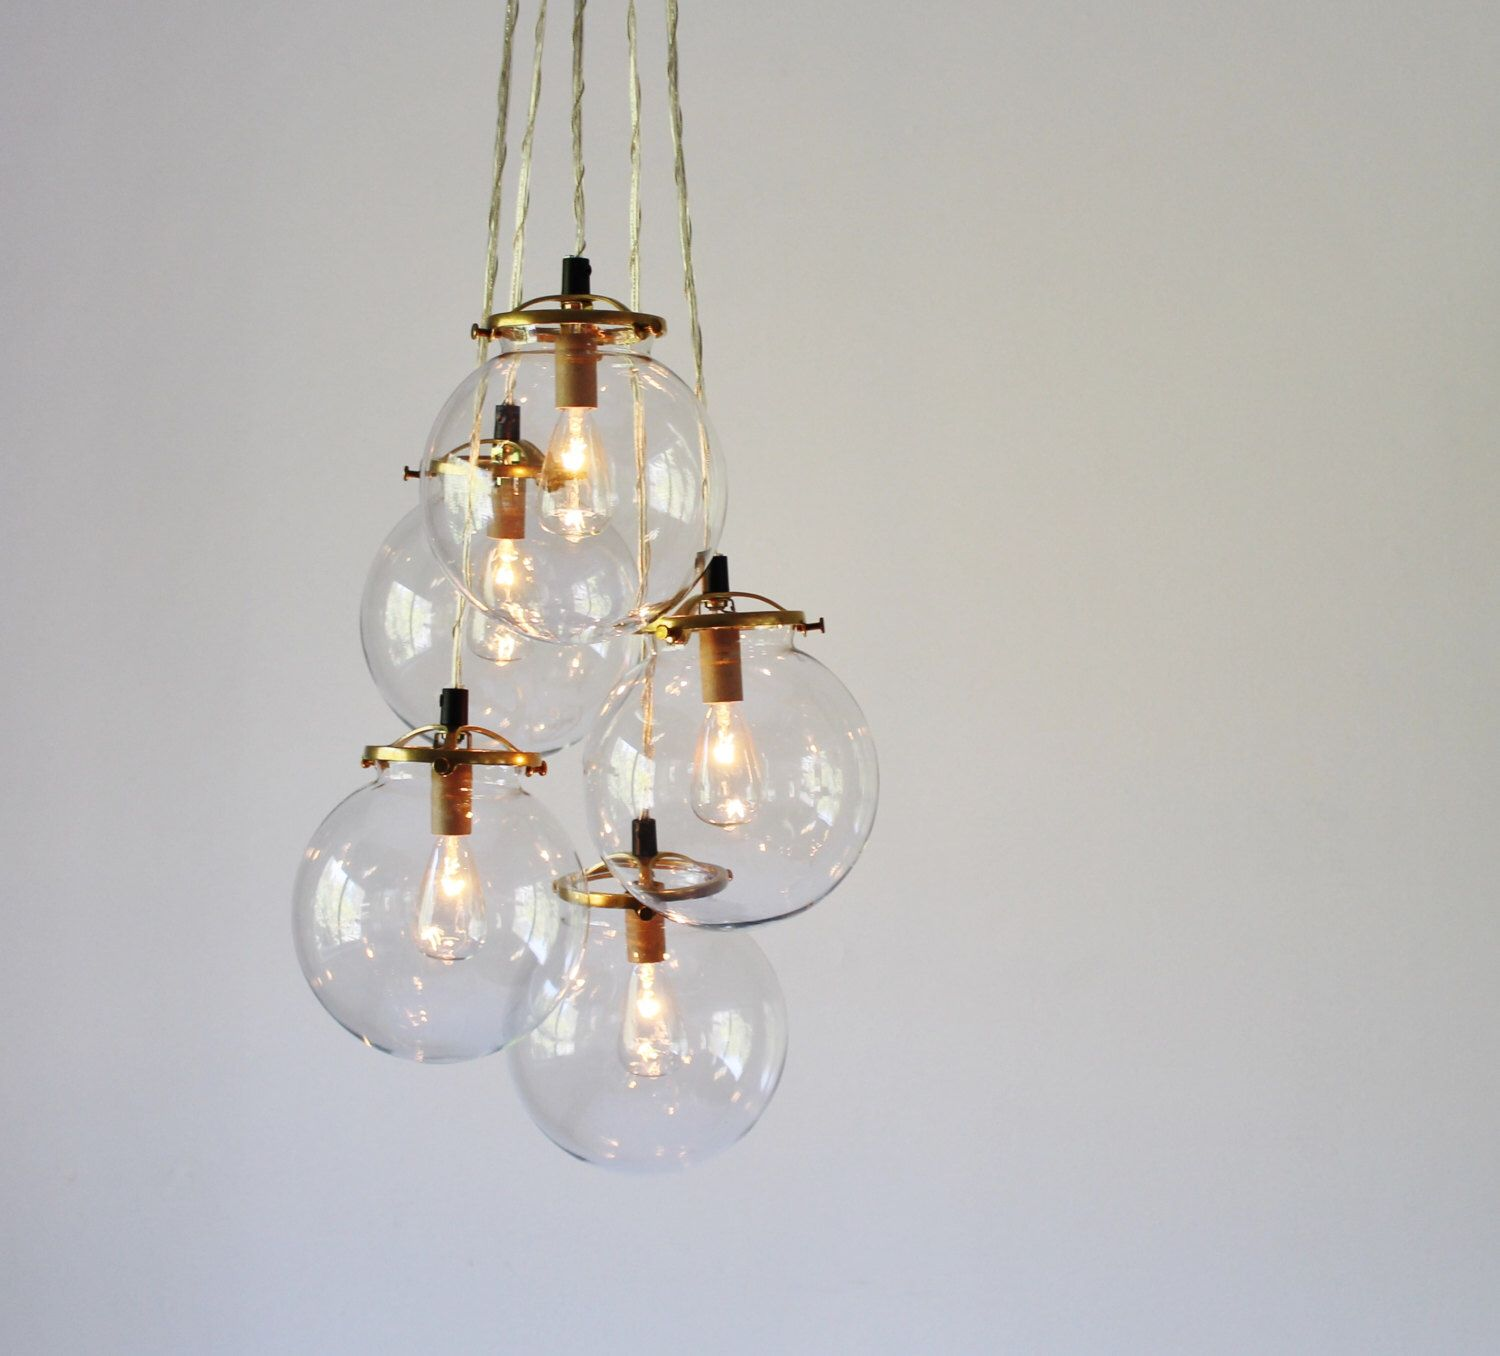 Globe Chandelier Lighting Fixture 5 Hanging Clear Glass Bubble Clustered Pendant Lights Modern Bootsngus Lighting Chandelier Lighting Fixtures Cluster Chandelier Cluster Pendant Lighting